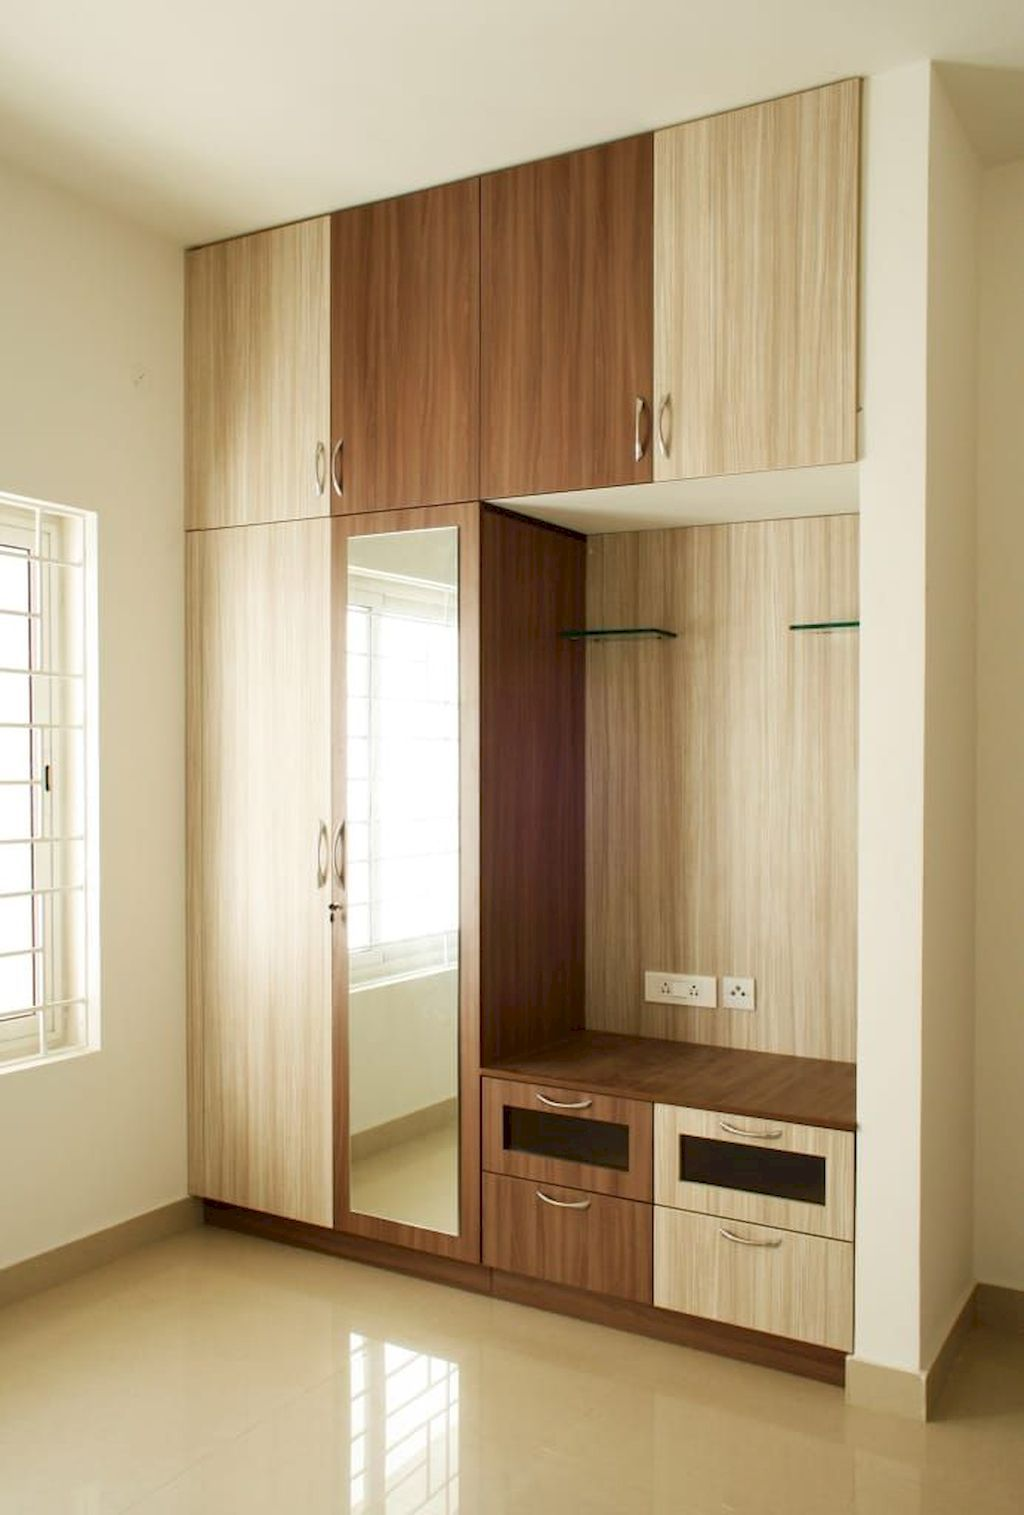 The Advantages Of Wardrobe Closet Furnishings With Images Bedroom Cupboard Designs